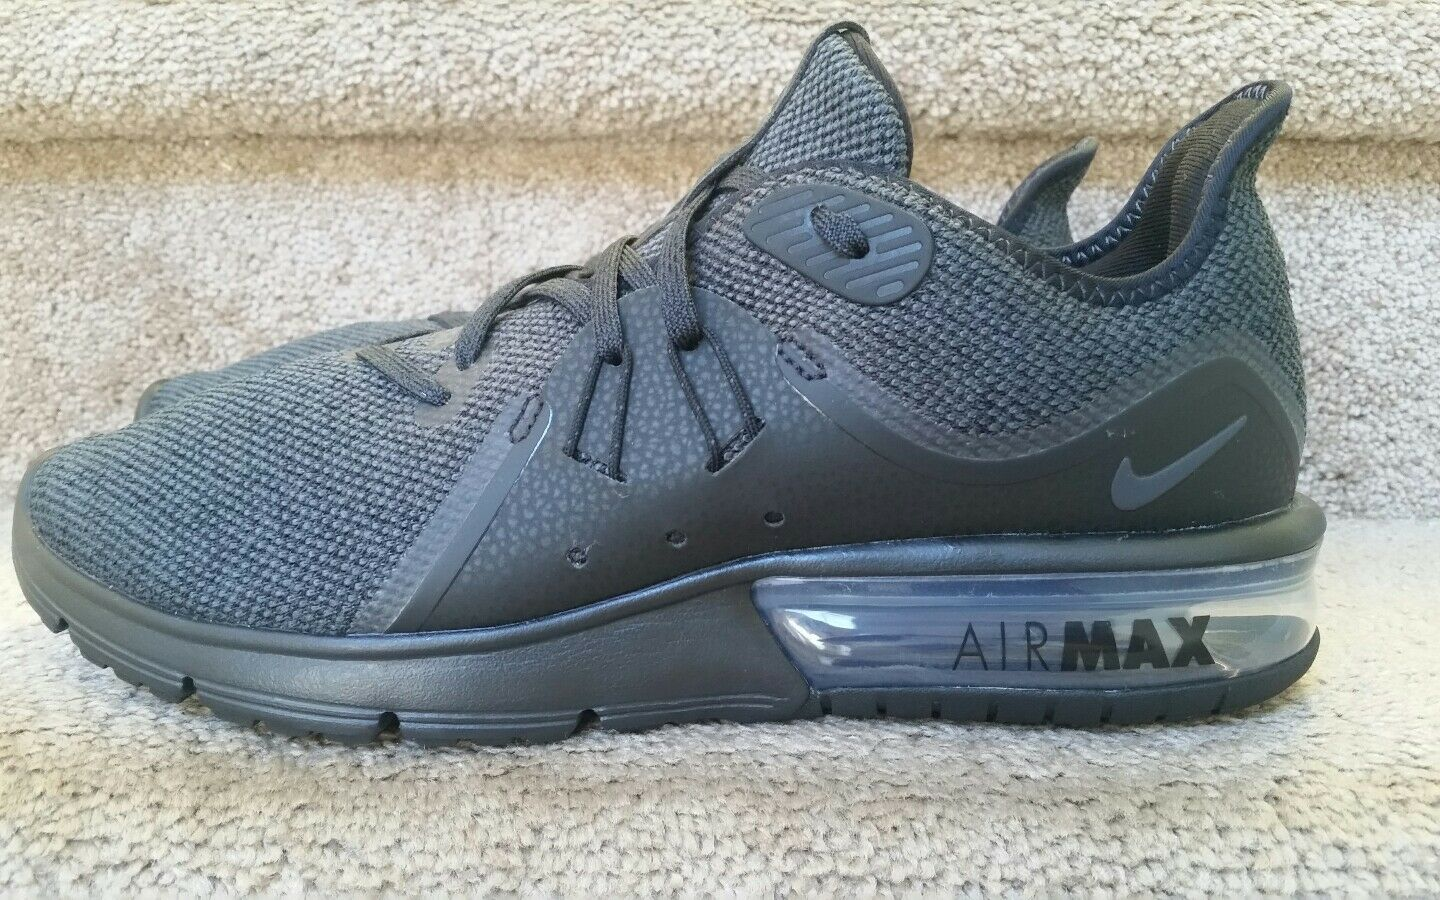 Nike Air Max Sequent 3 Black Men's Size 9